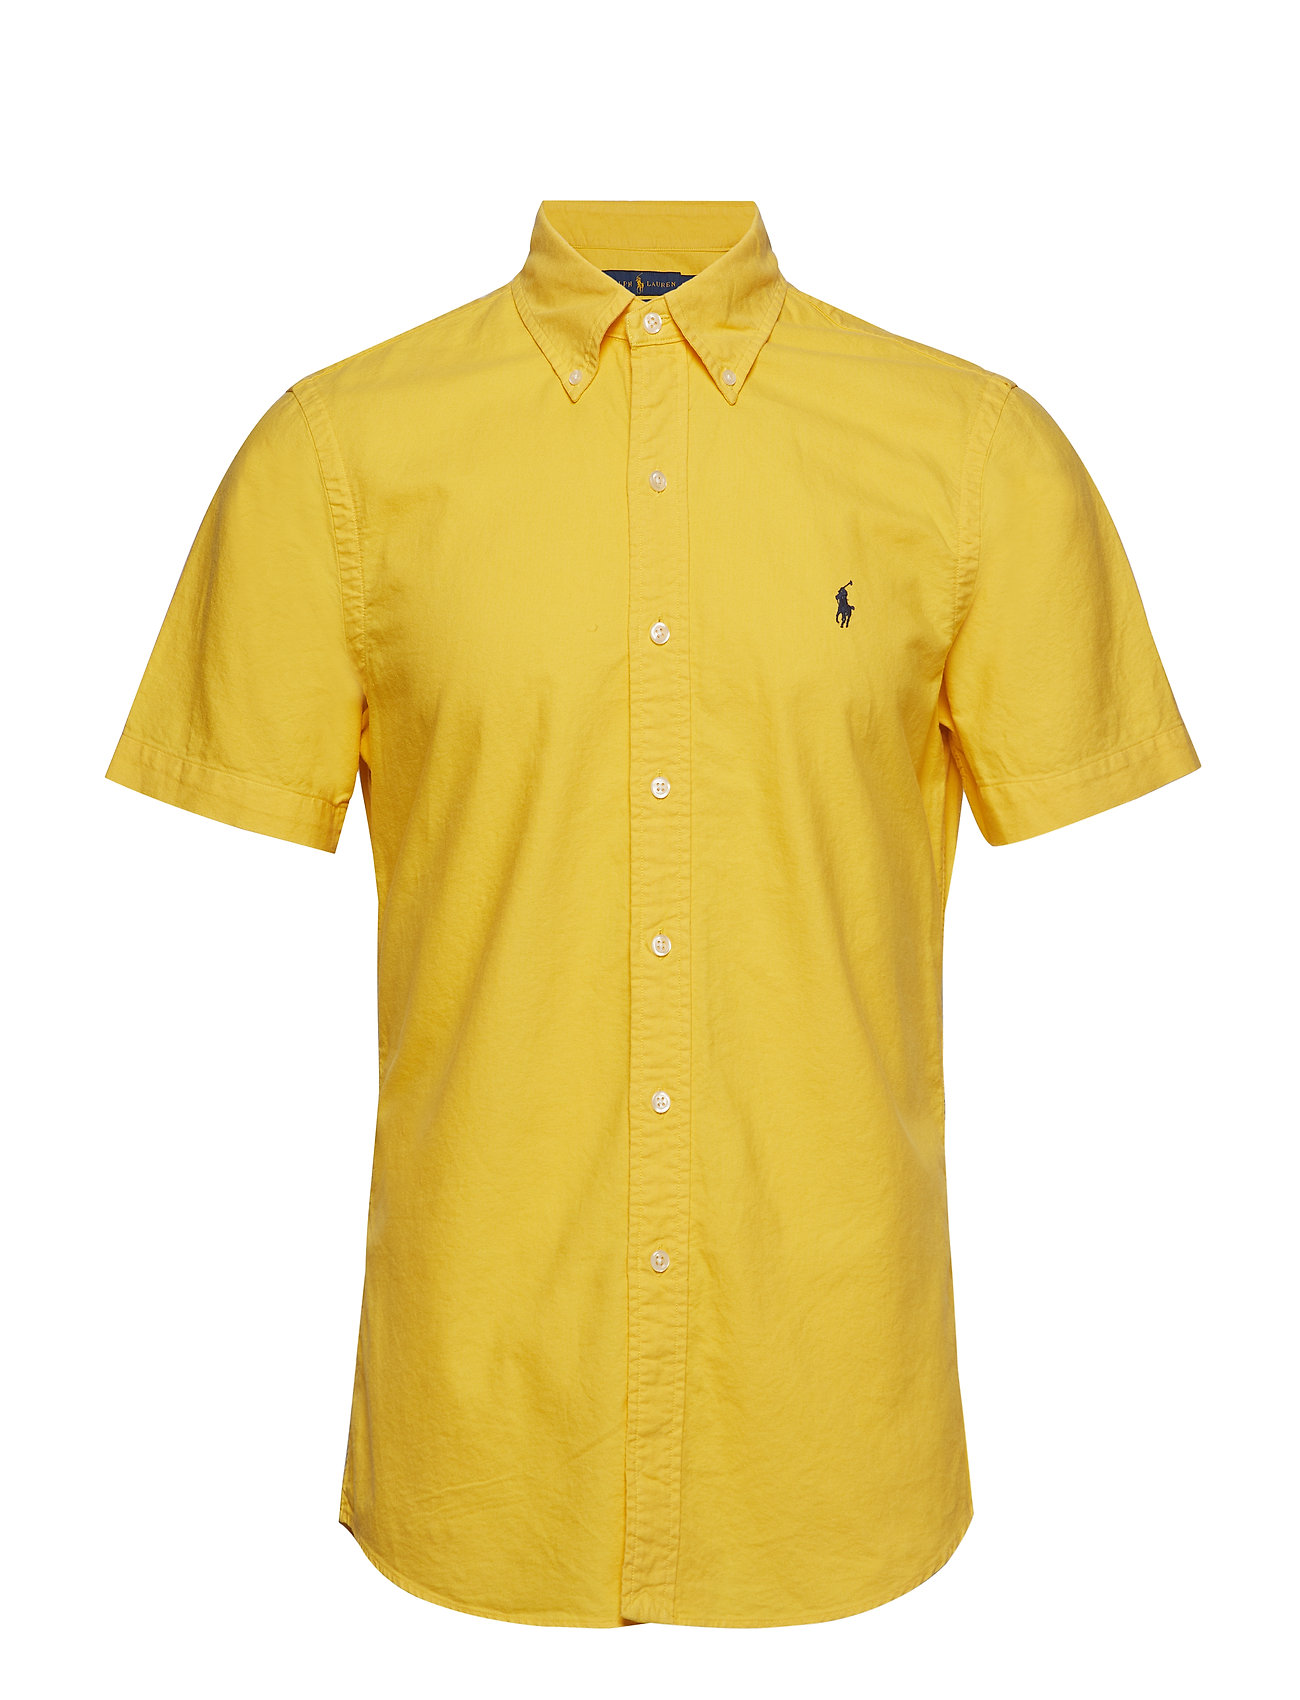 Polo Ralph Lauren Slim Fit Oxford Shirt - GOLD BUGLE